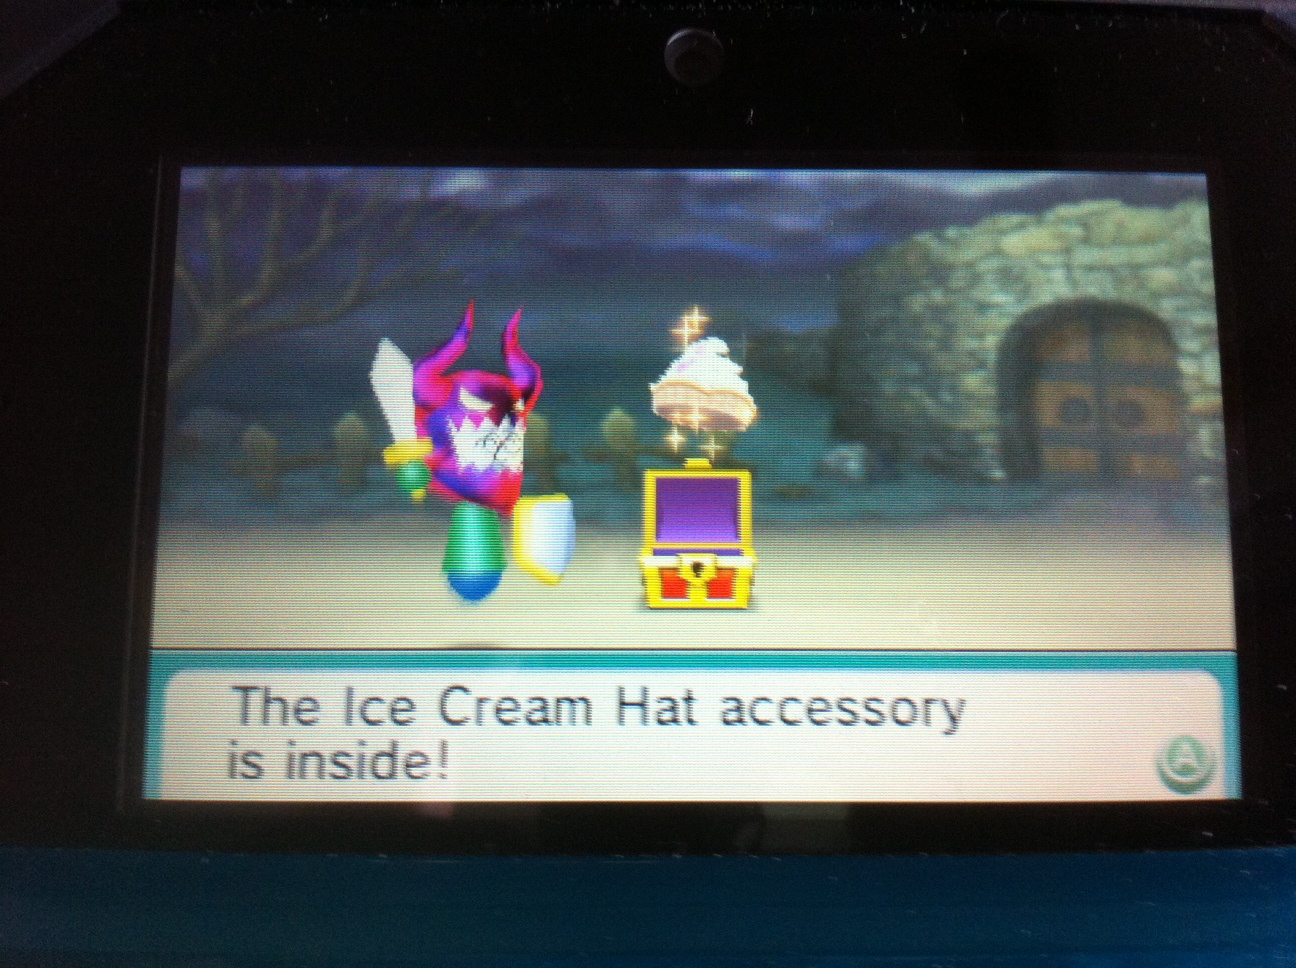 3DS Mii Hats http://gamingpicsandclips.blogspot.com/2012/04/unlocking-ice-cream-hat-in-find-mii-ii.html